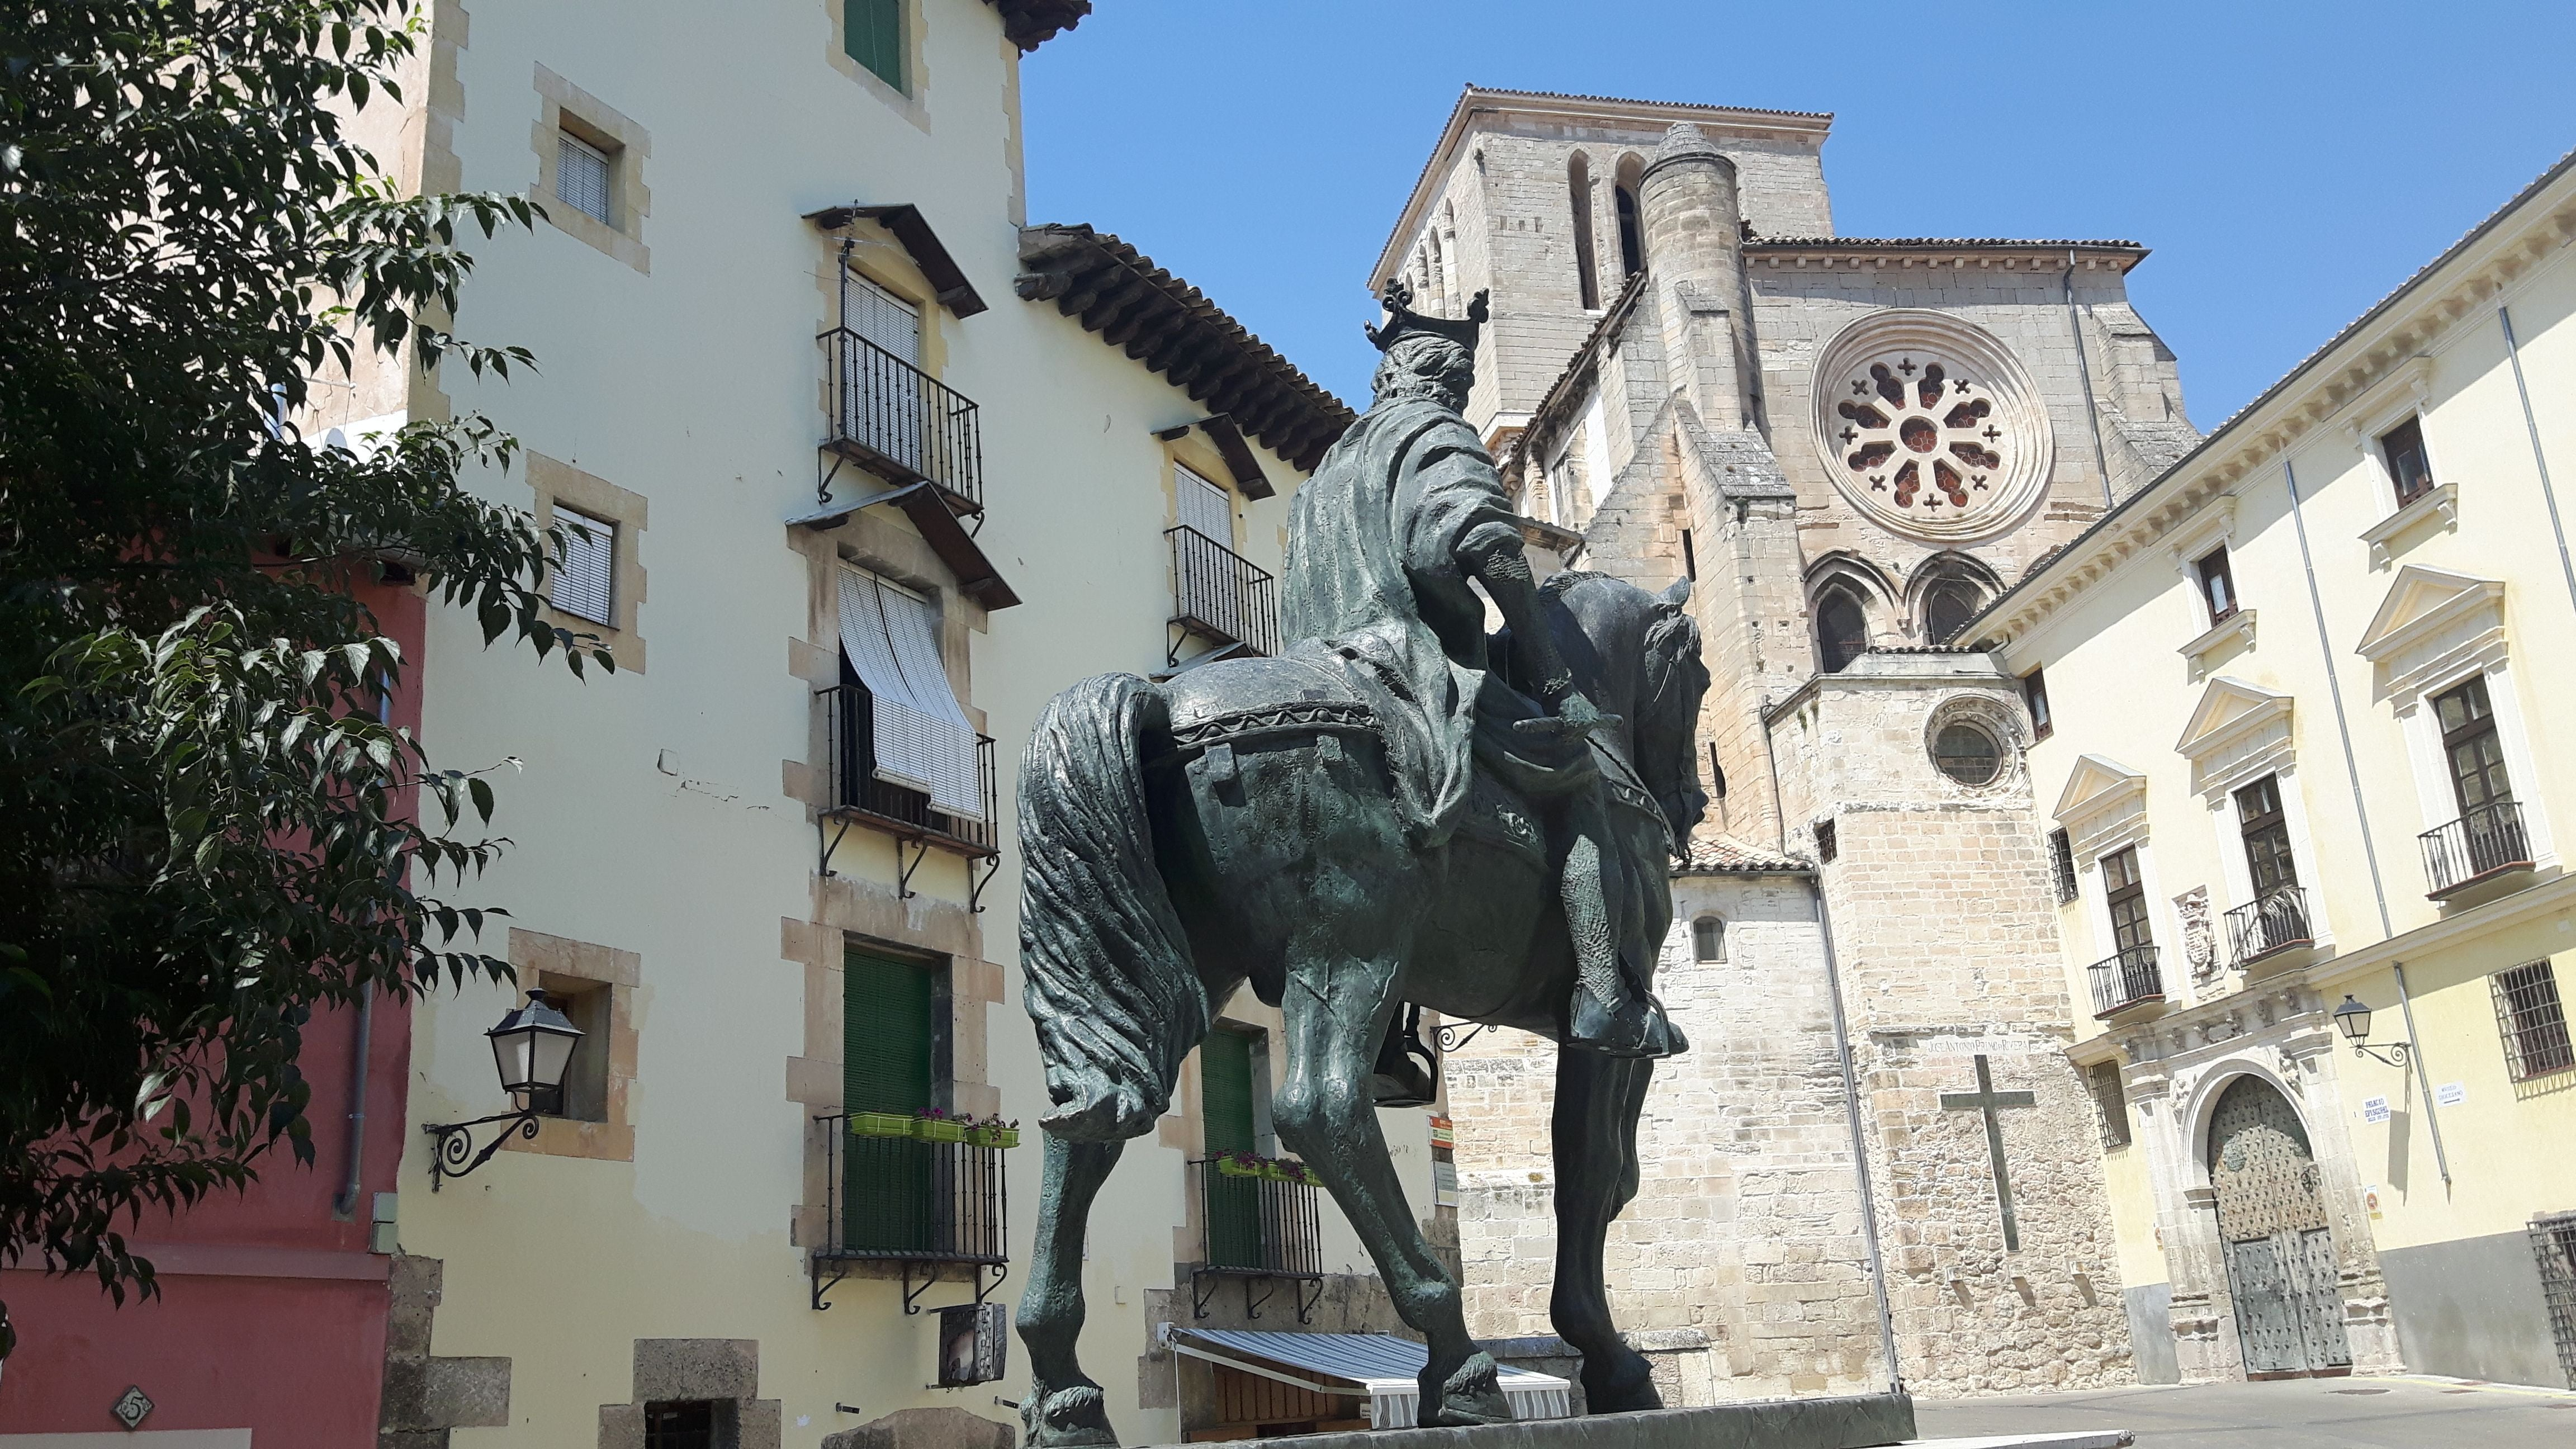 Statue in Monumento a Alfonso VIII